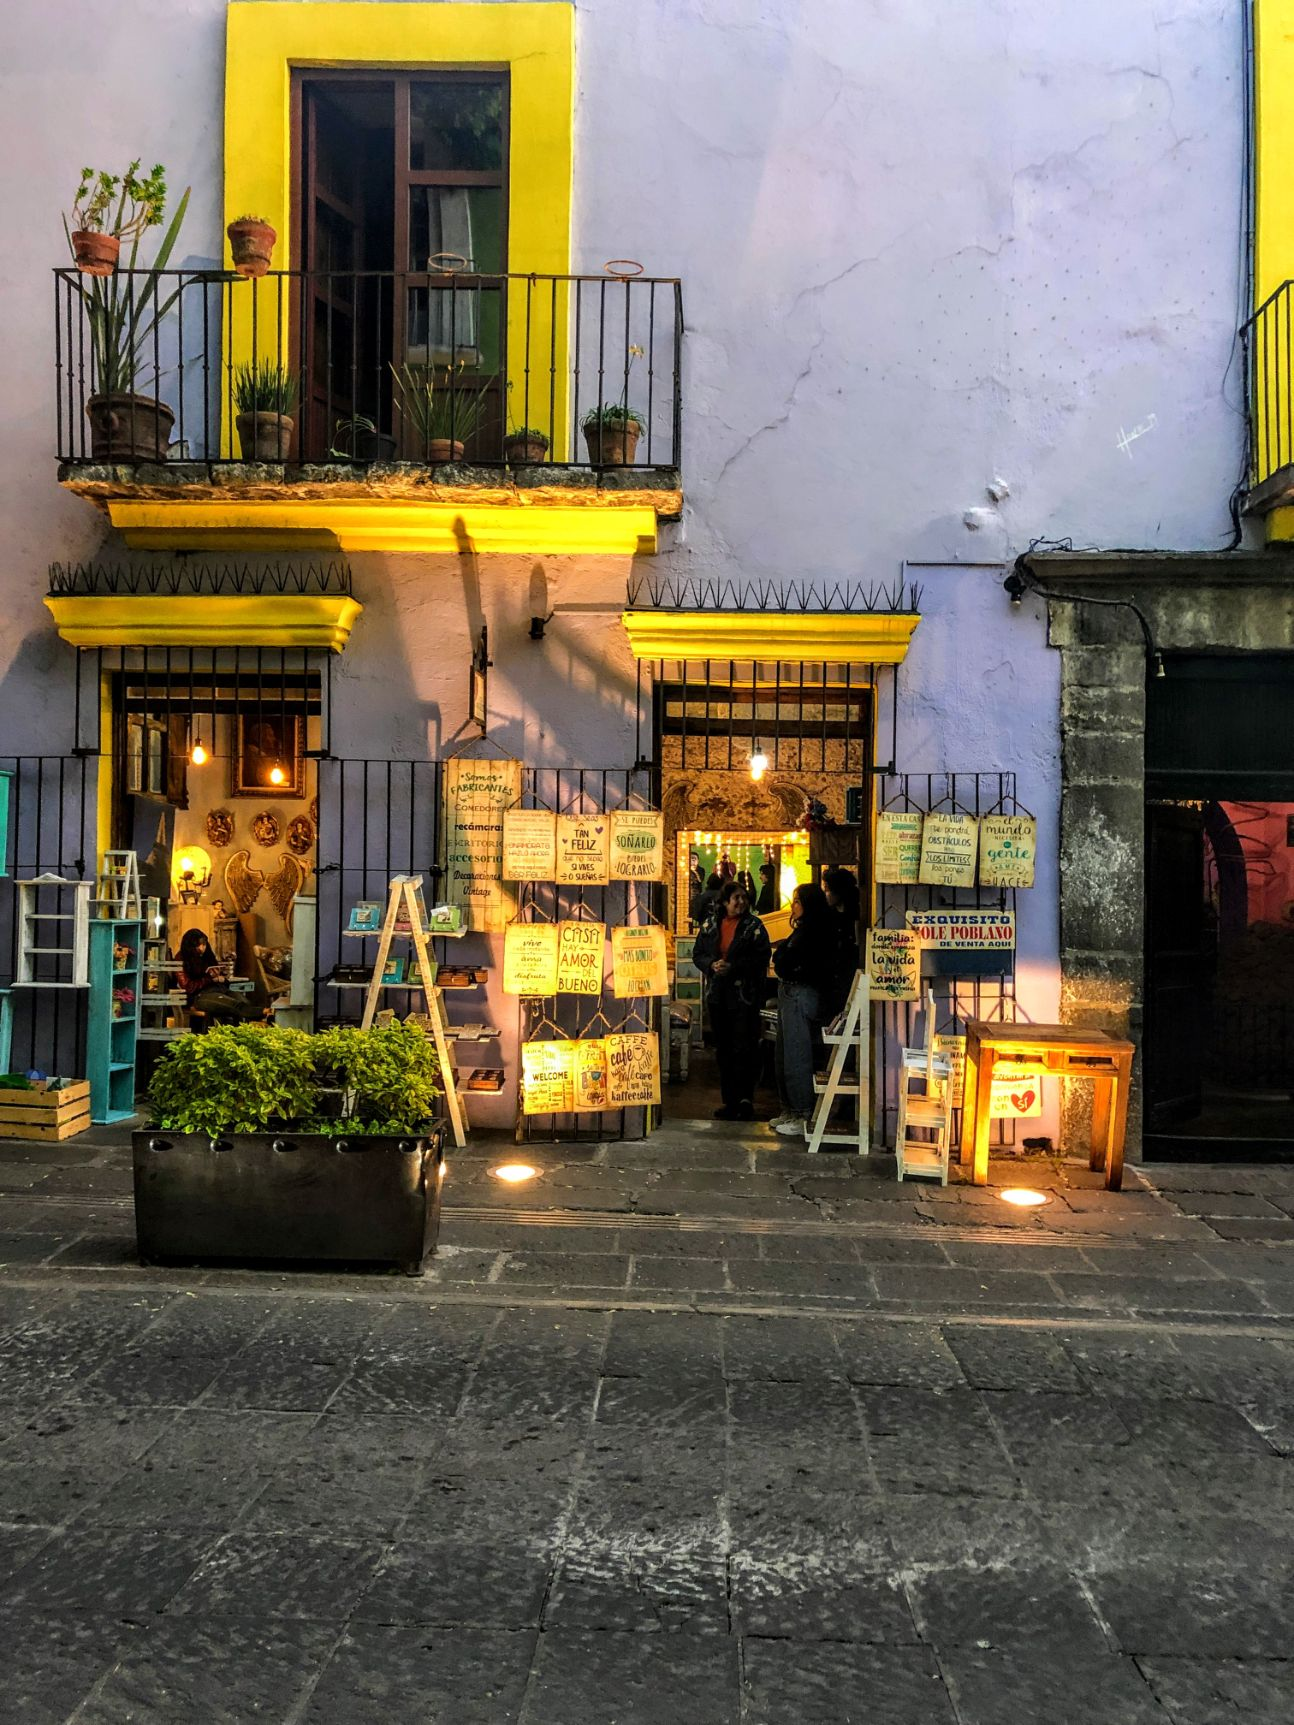 purple storefront with art and yellow wall accents